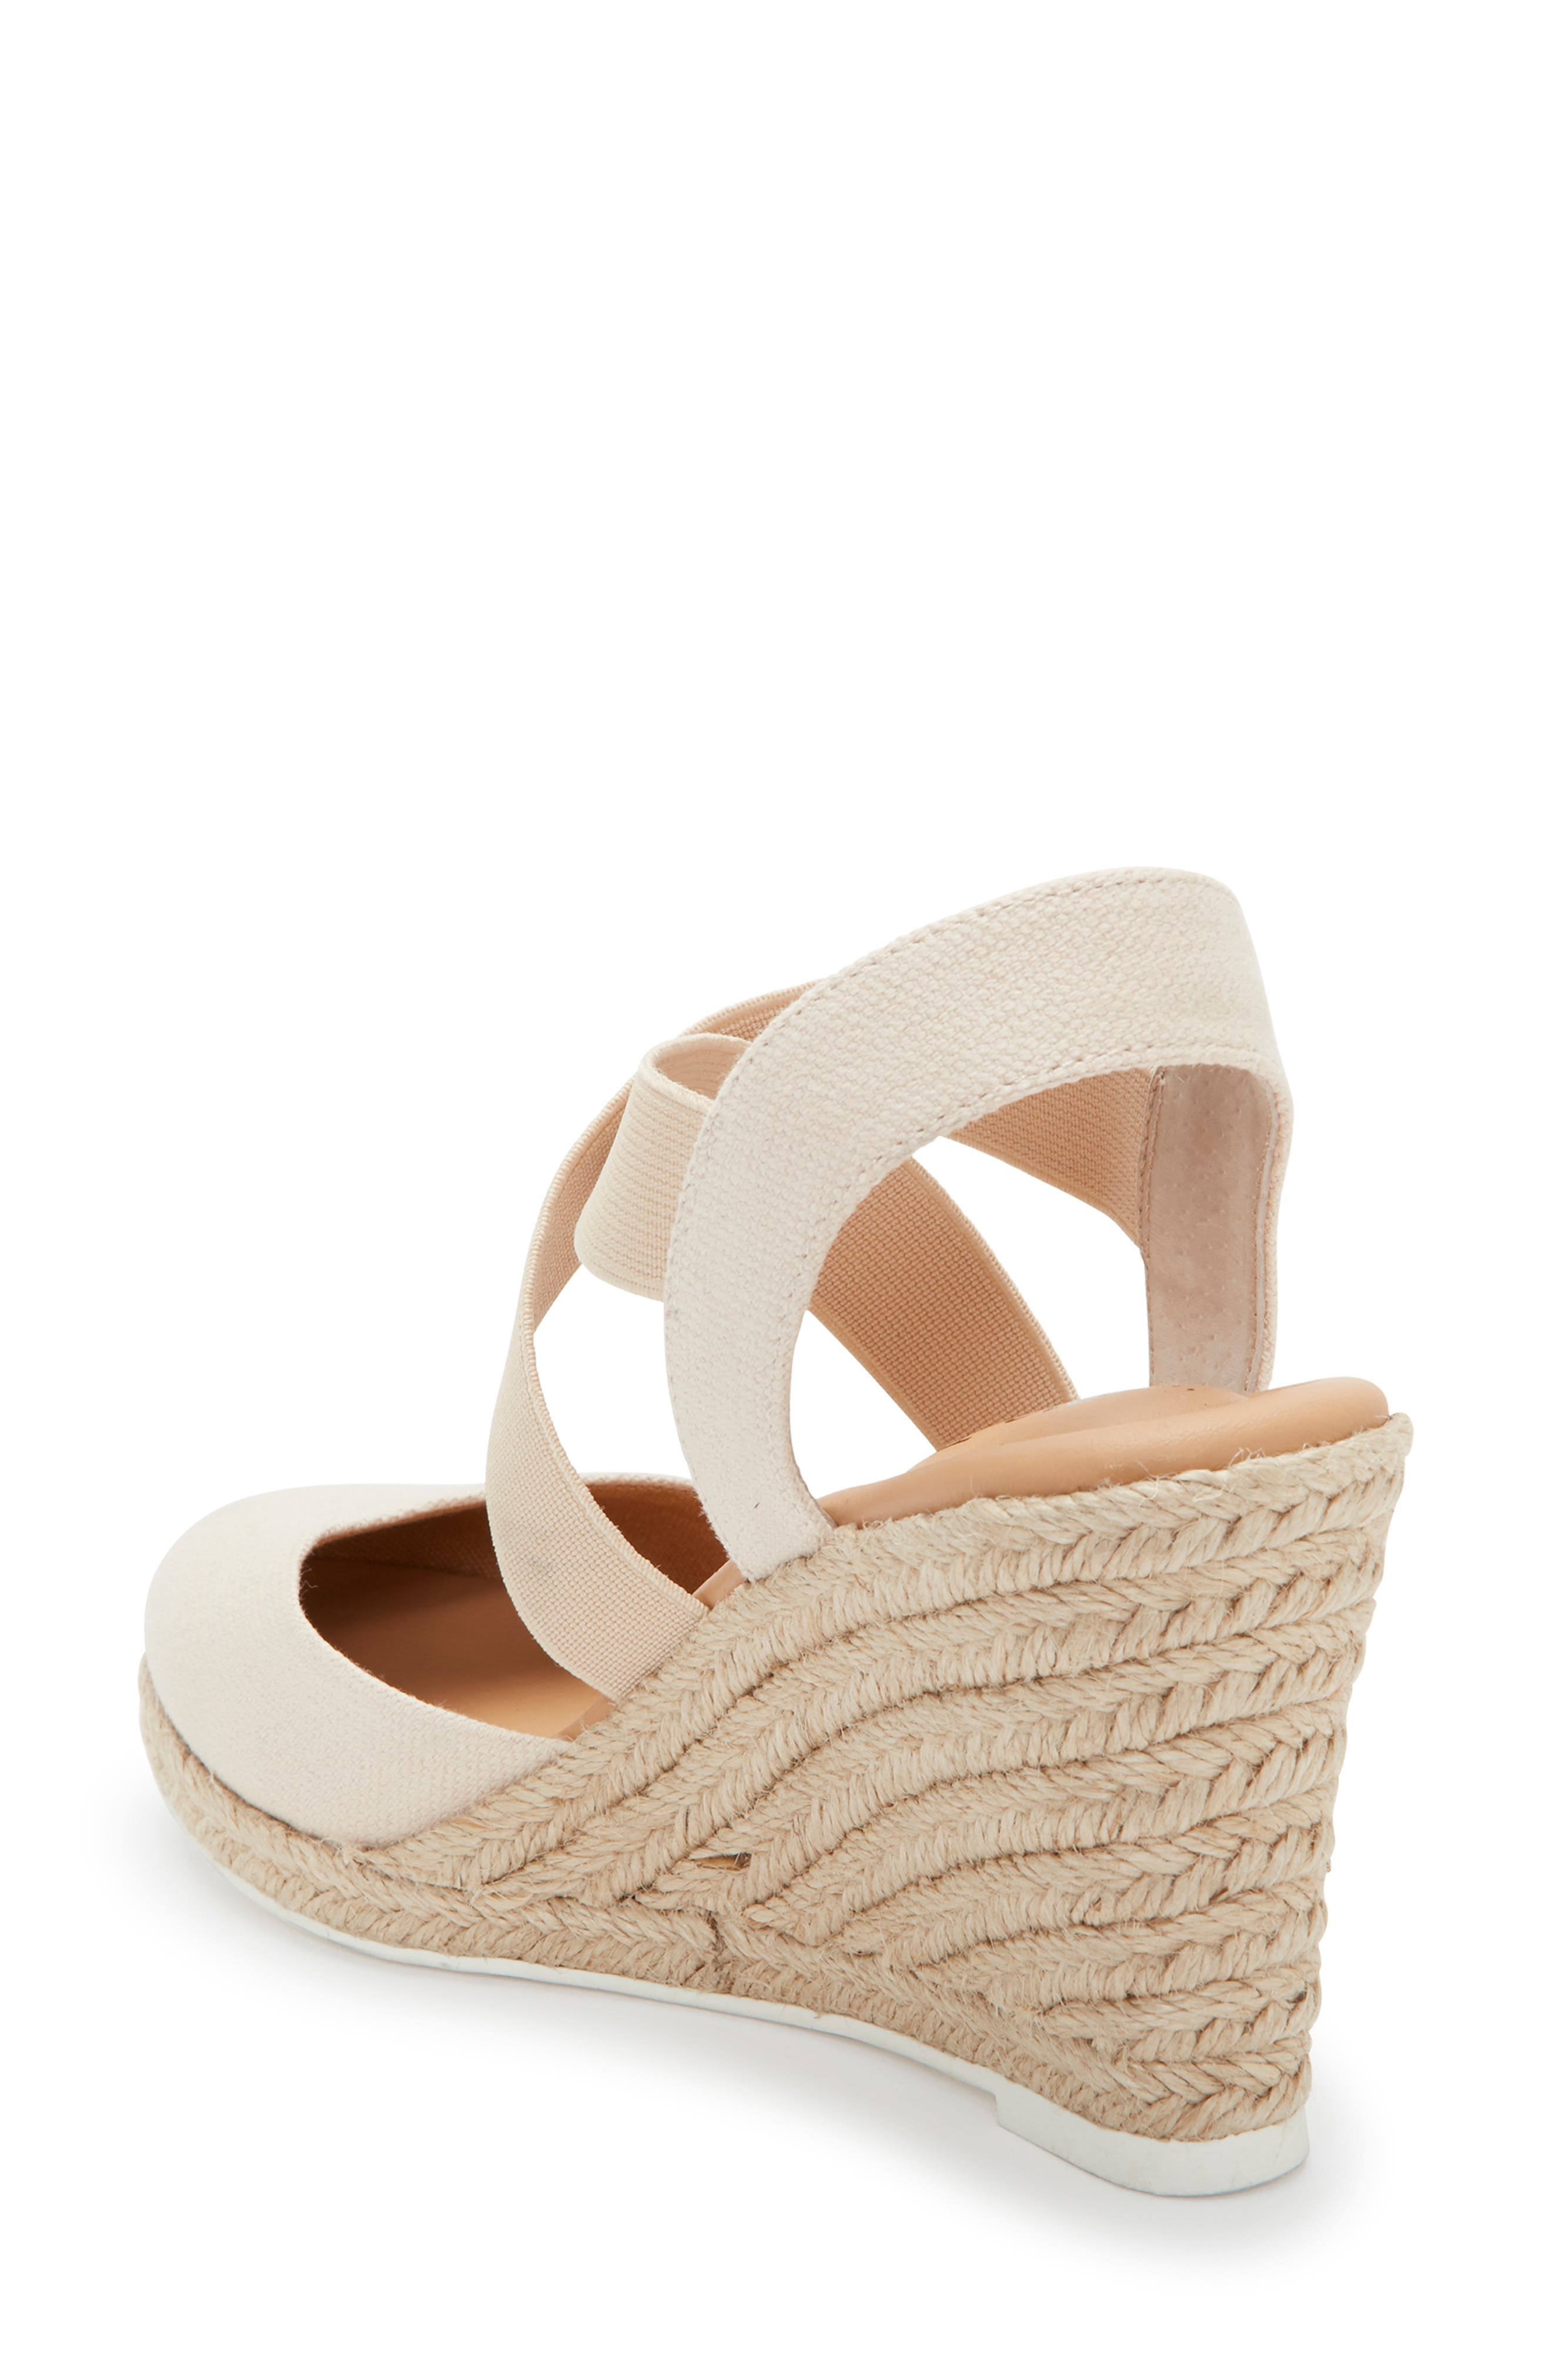 ME TOO, Brinley Espadrille Wedge, Alternate thumbnail 2, color, NATURAL CANVAS